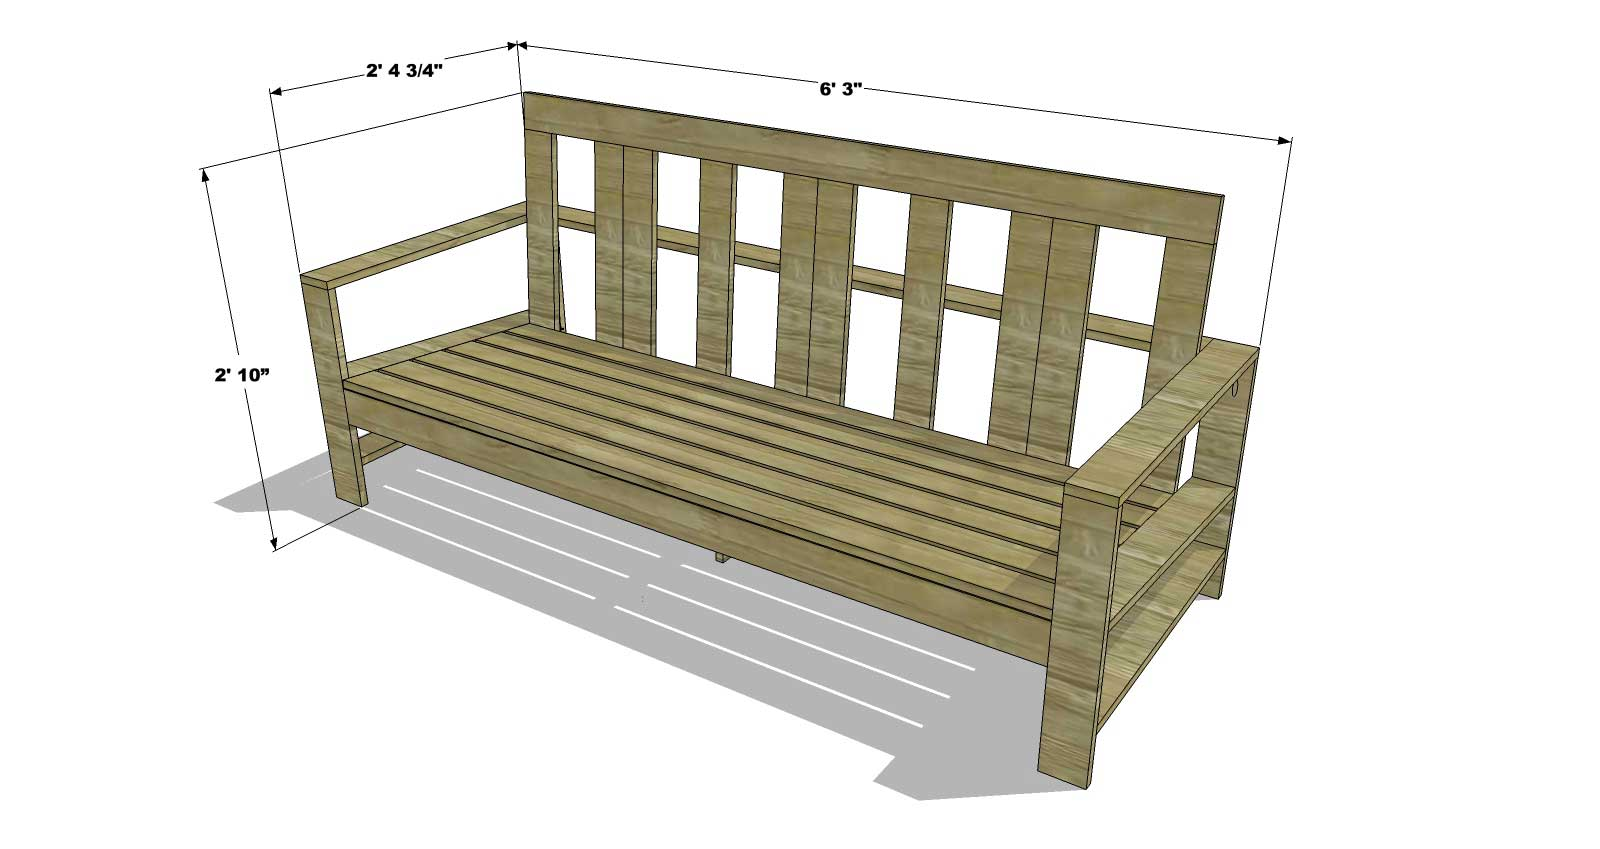 You Can Build This! The Design Confidentialu0027s Easy DIY Furniture Plans To  Build An Outdoor